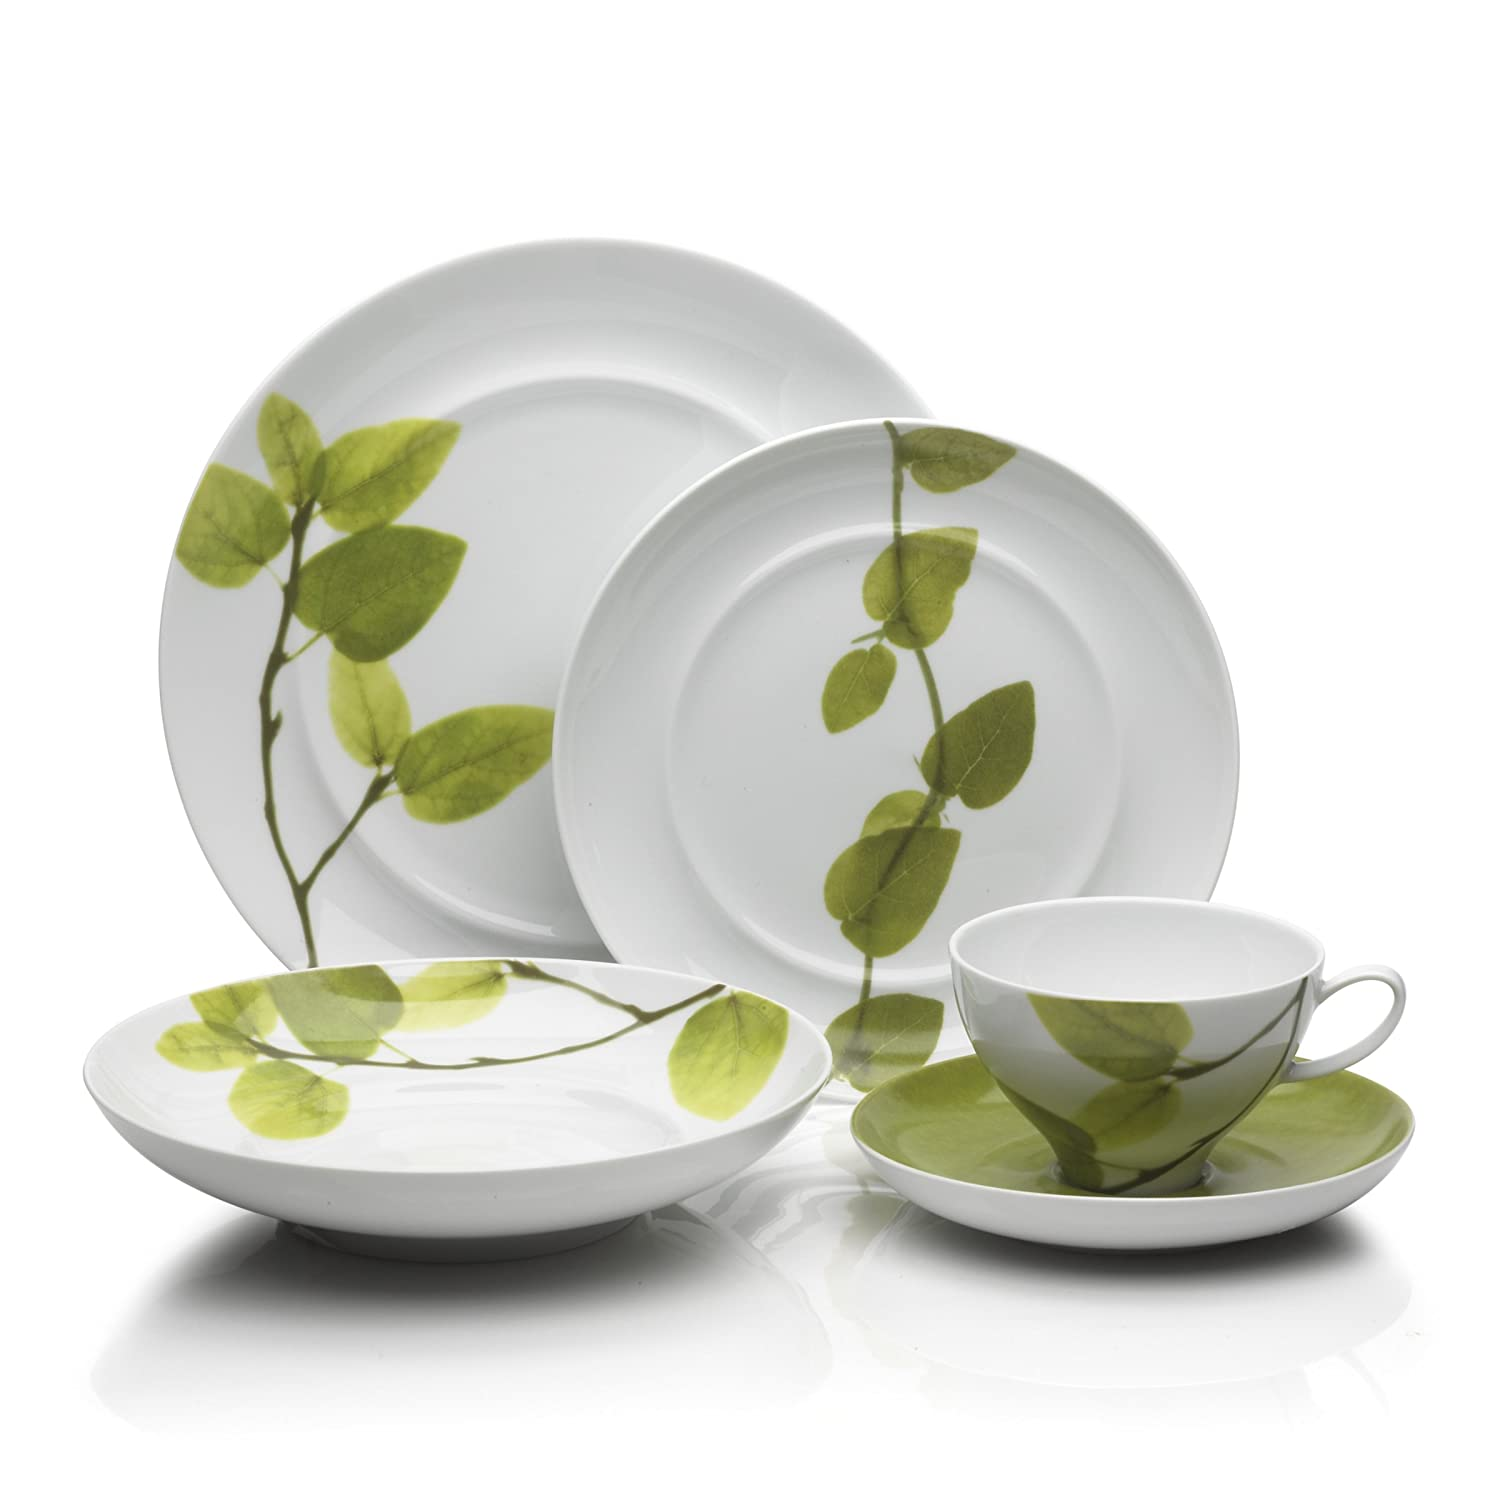 Amazon.com | Mikasa Daylight 5-Piece Dinnerware Set Serice for 1 Dinnerware Sets  sc 1 st  Amazon.com & Amazon.com | Mikasa Daylight 5-Piece Dinnerware Set Serice for 1 ...